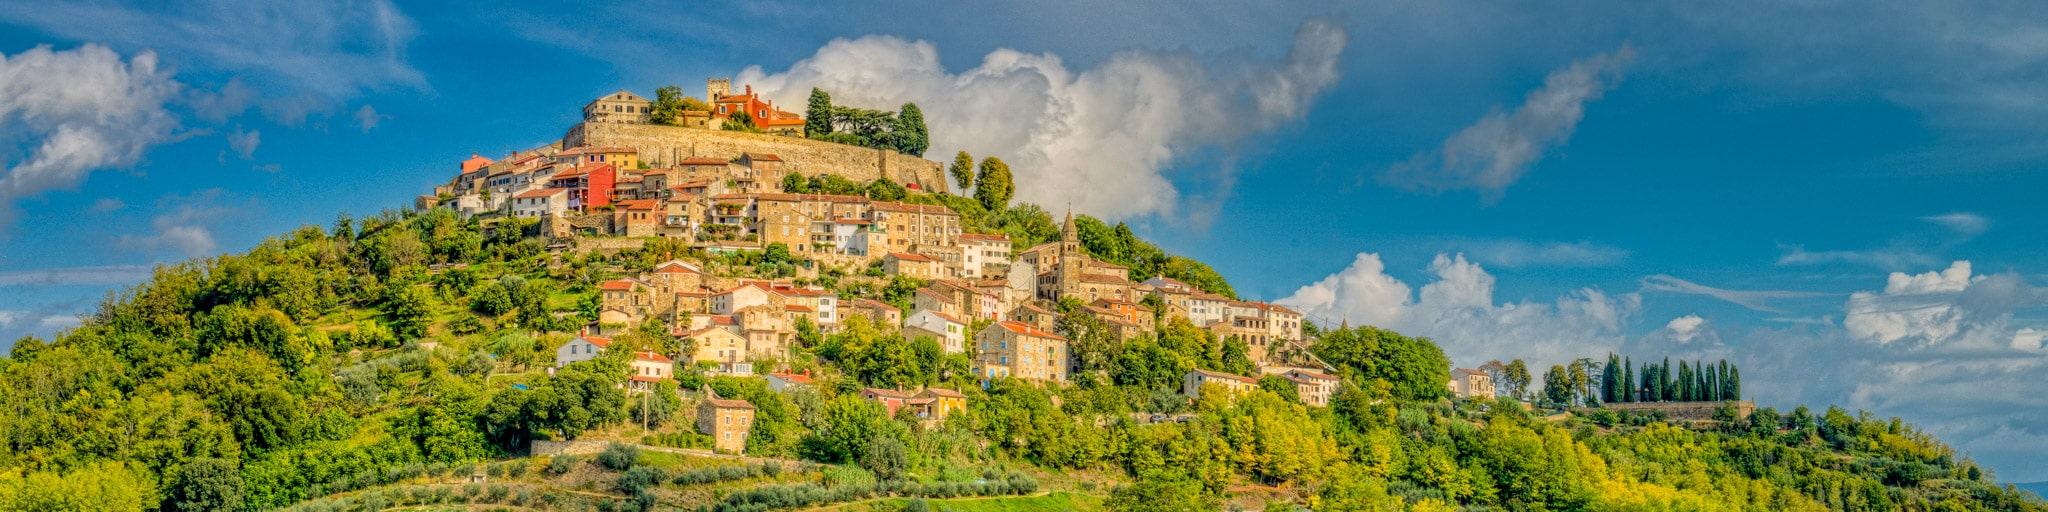 This panorama looks westward toward the hilltop Medieval Istrian village of Motovun, Croatia.